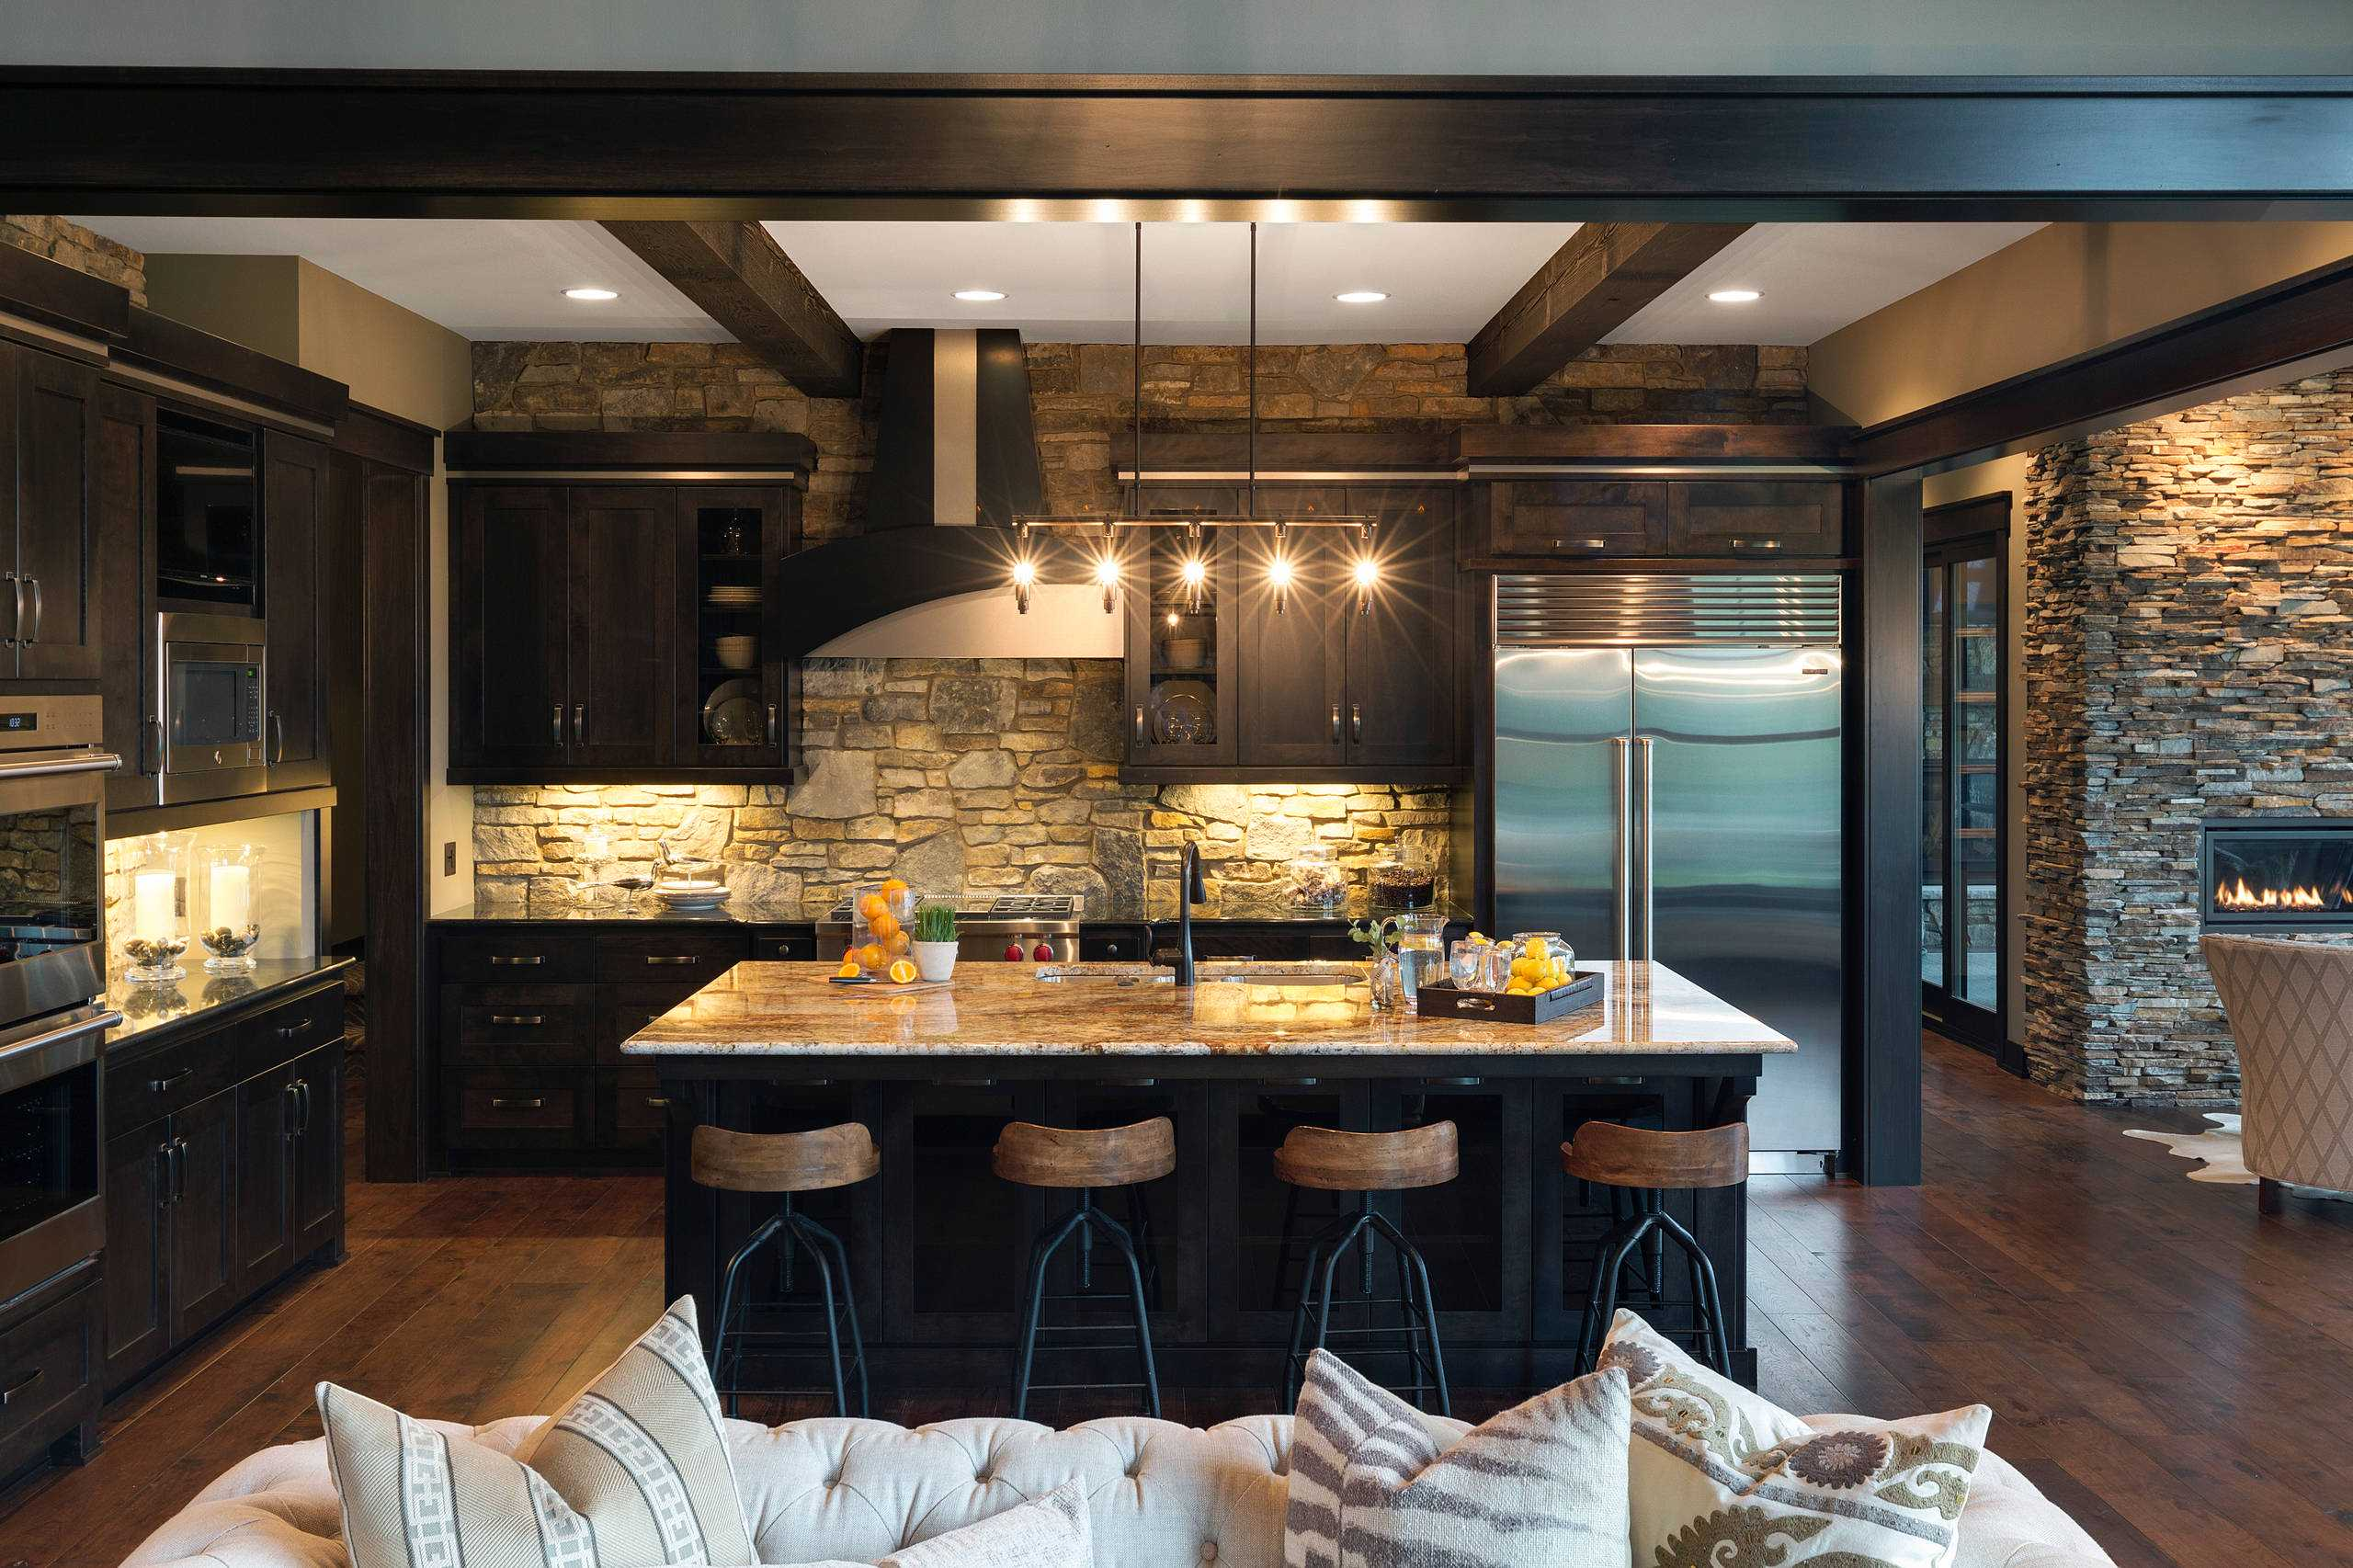 15 inspirational rustic kitchen designs you will adore Rustic kitchen designs